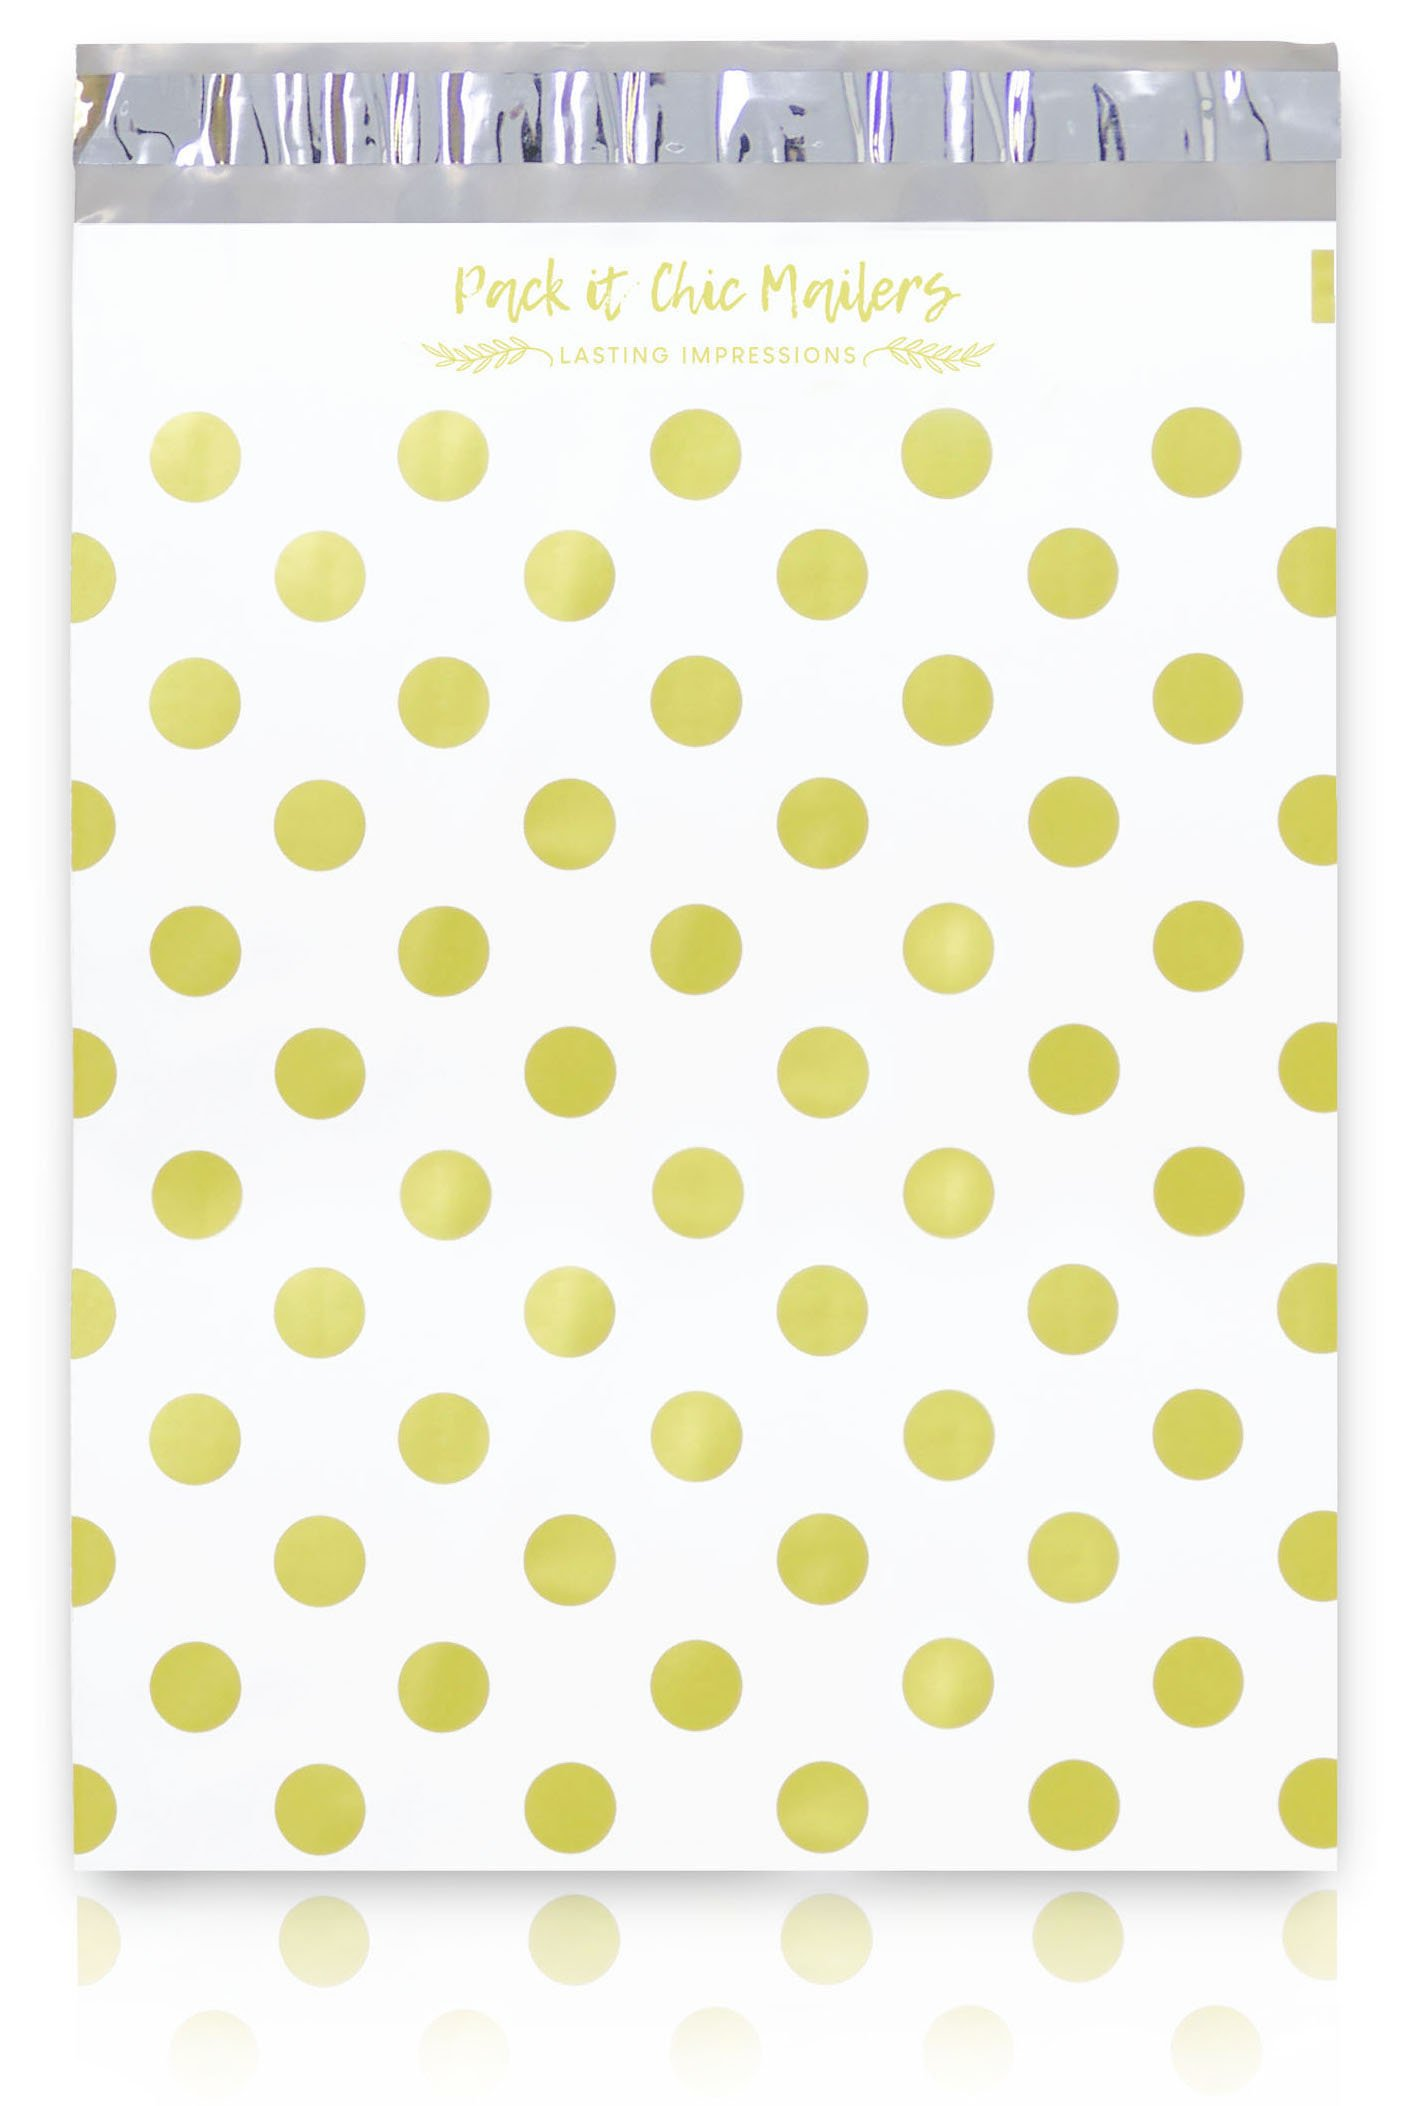 """[ 100-10"""" X 13"""" ] Gold Polka Dots Pattern Custom Poly Mailer Envelope Shipping Bags, Tear Proof & Powerful Self Seal Adhesive Postal Bags (Other Designs Available) - Pack It Chic"""